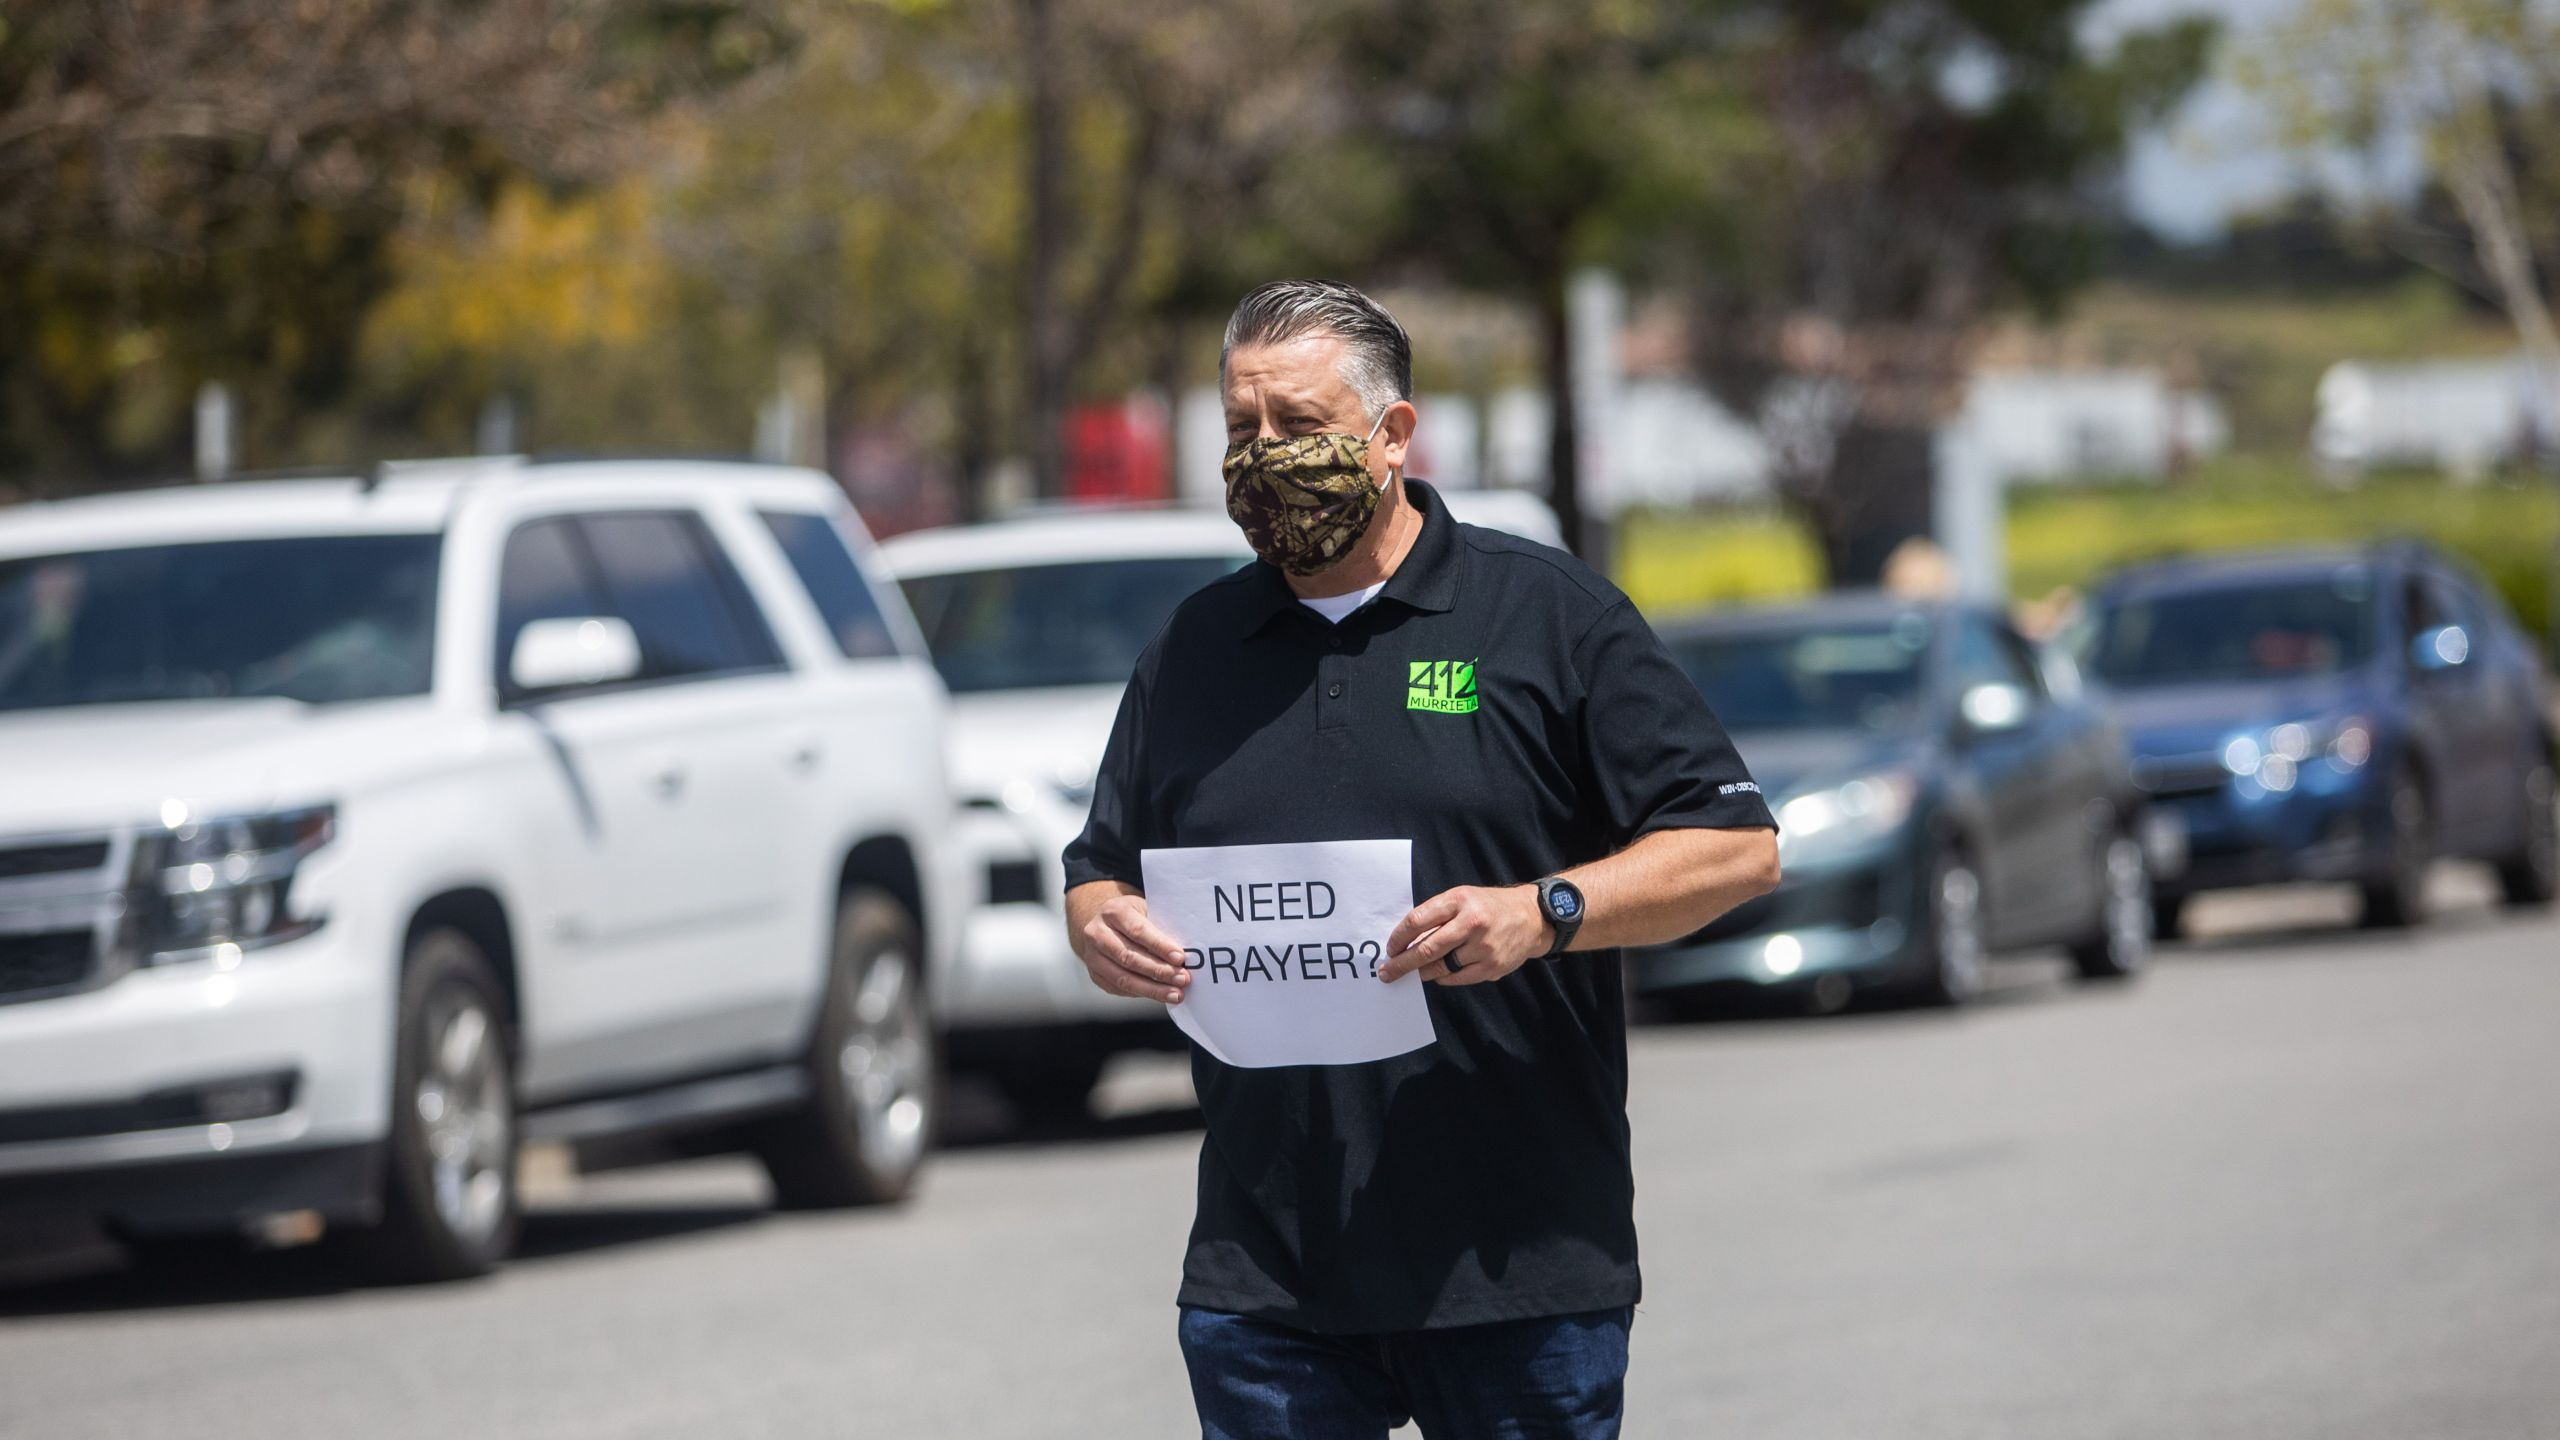 Simon Cooper offers prayers to people who attended an online Sunday Service inside their cars at the Christian '412 Church Murrieta' parking lot on April 19, 2020, in Murrieta, California. (APU GOMES/AFP via Getty Images)